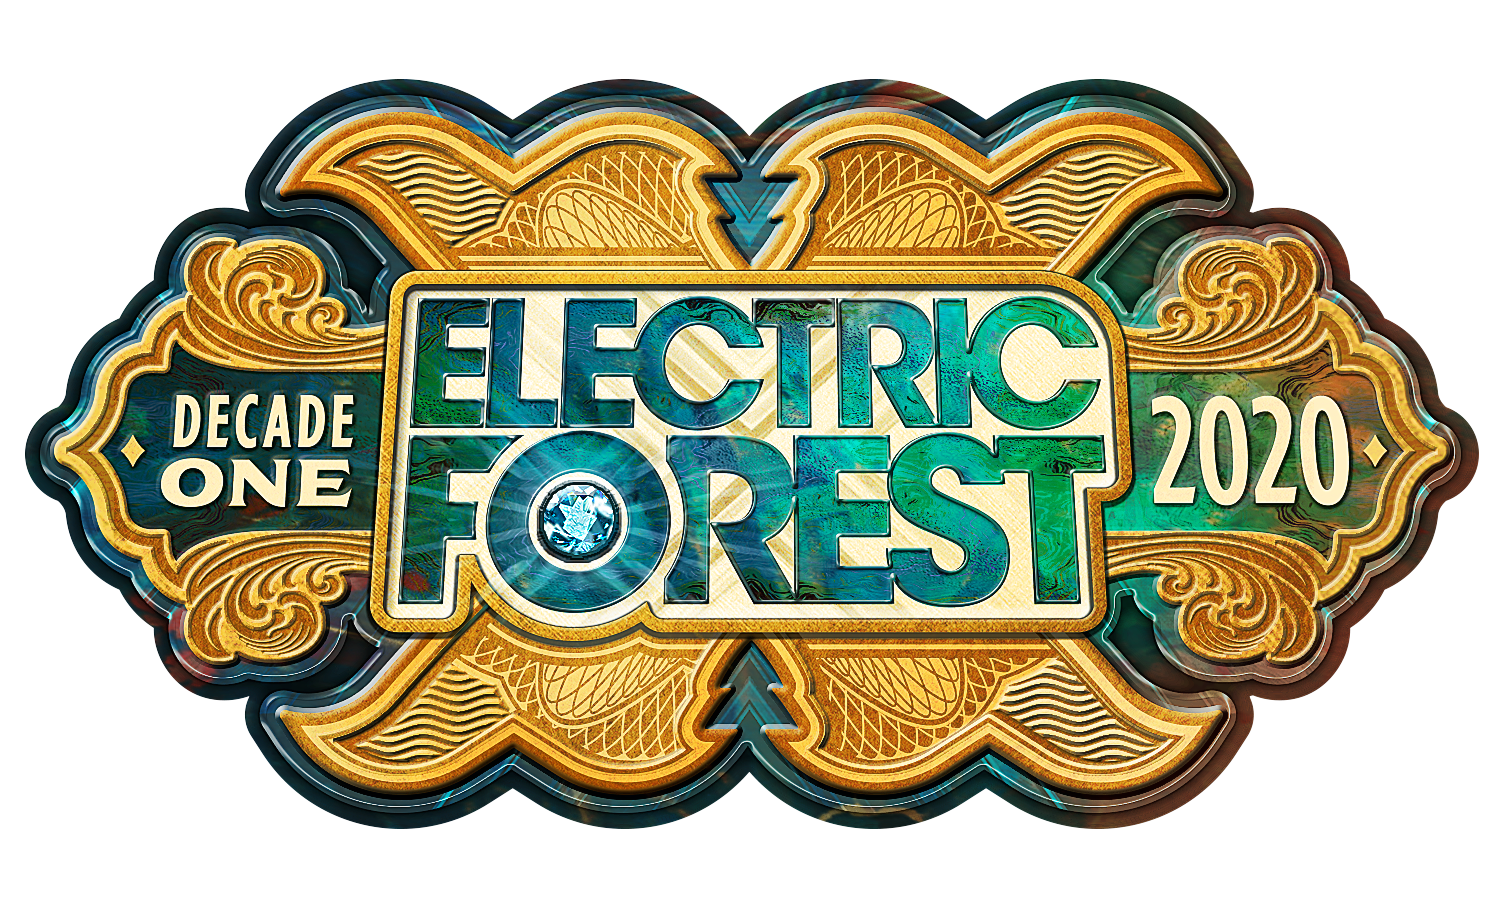 Electric Forest 2020 Full Logo